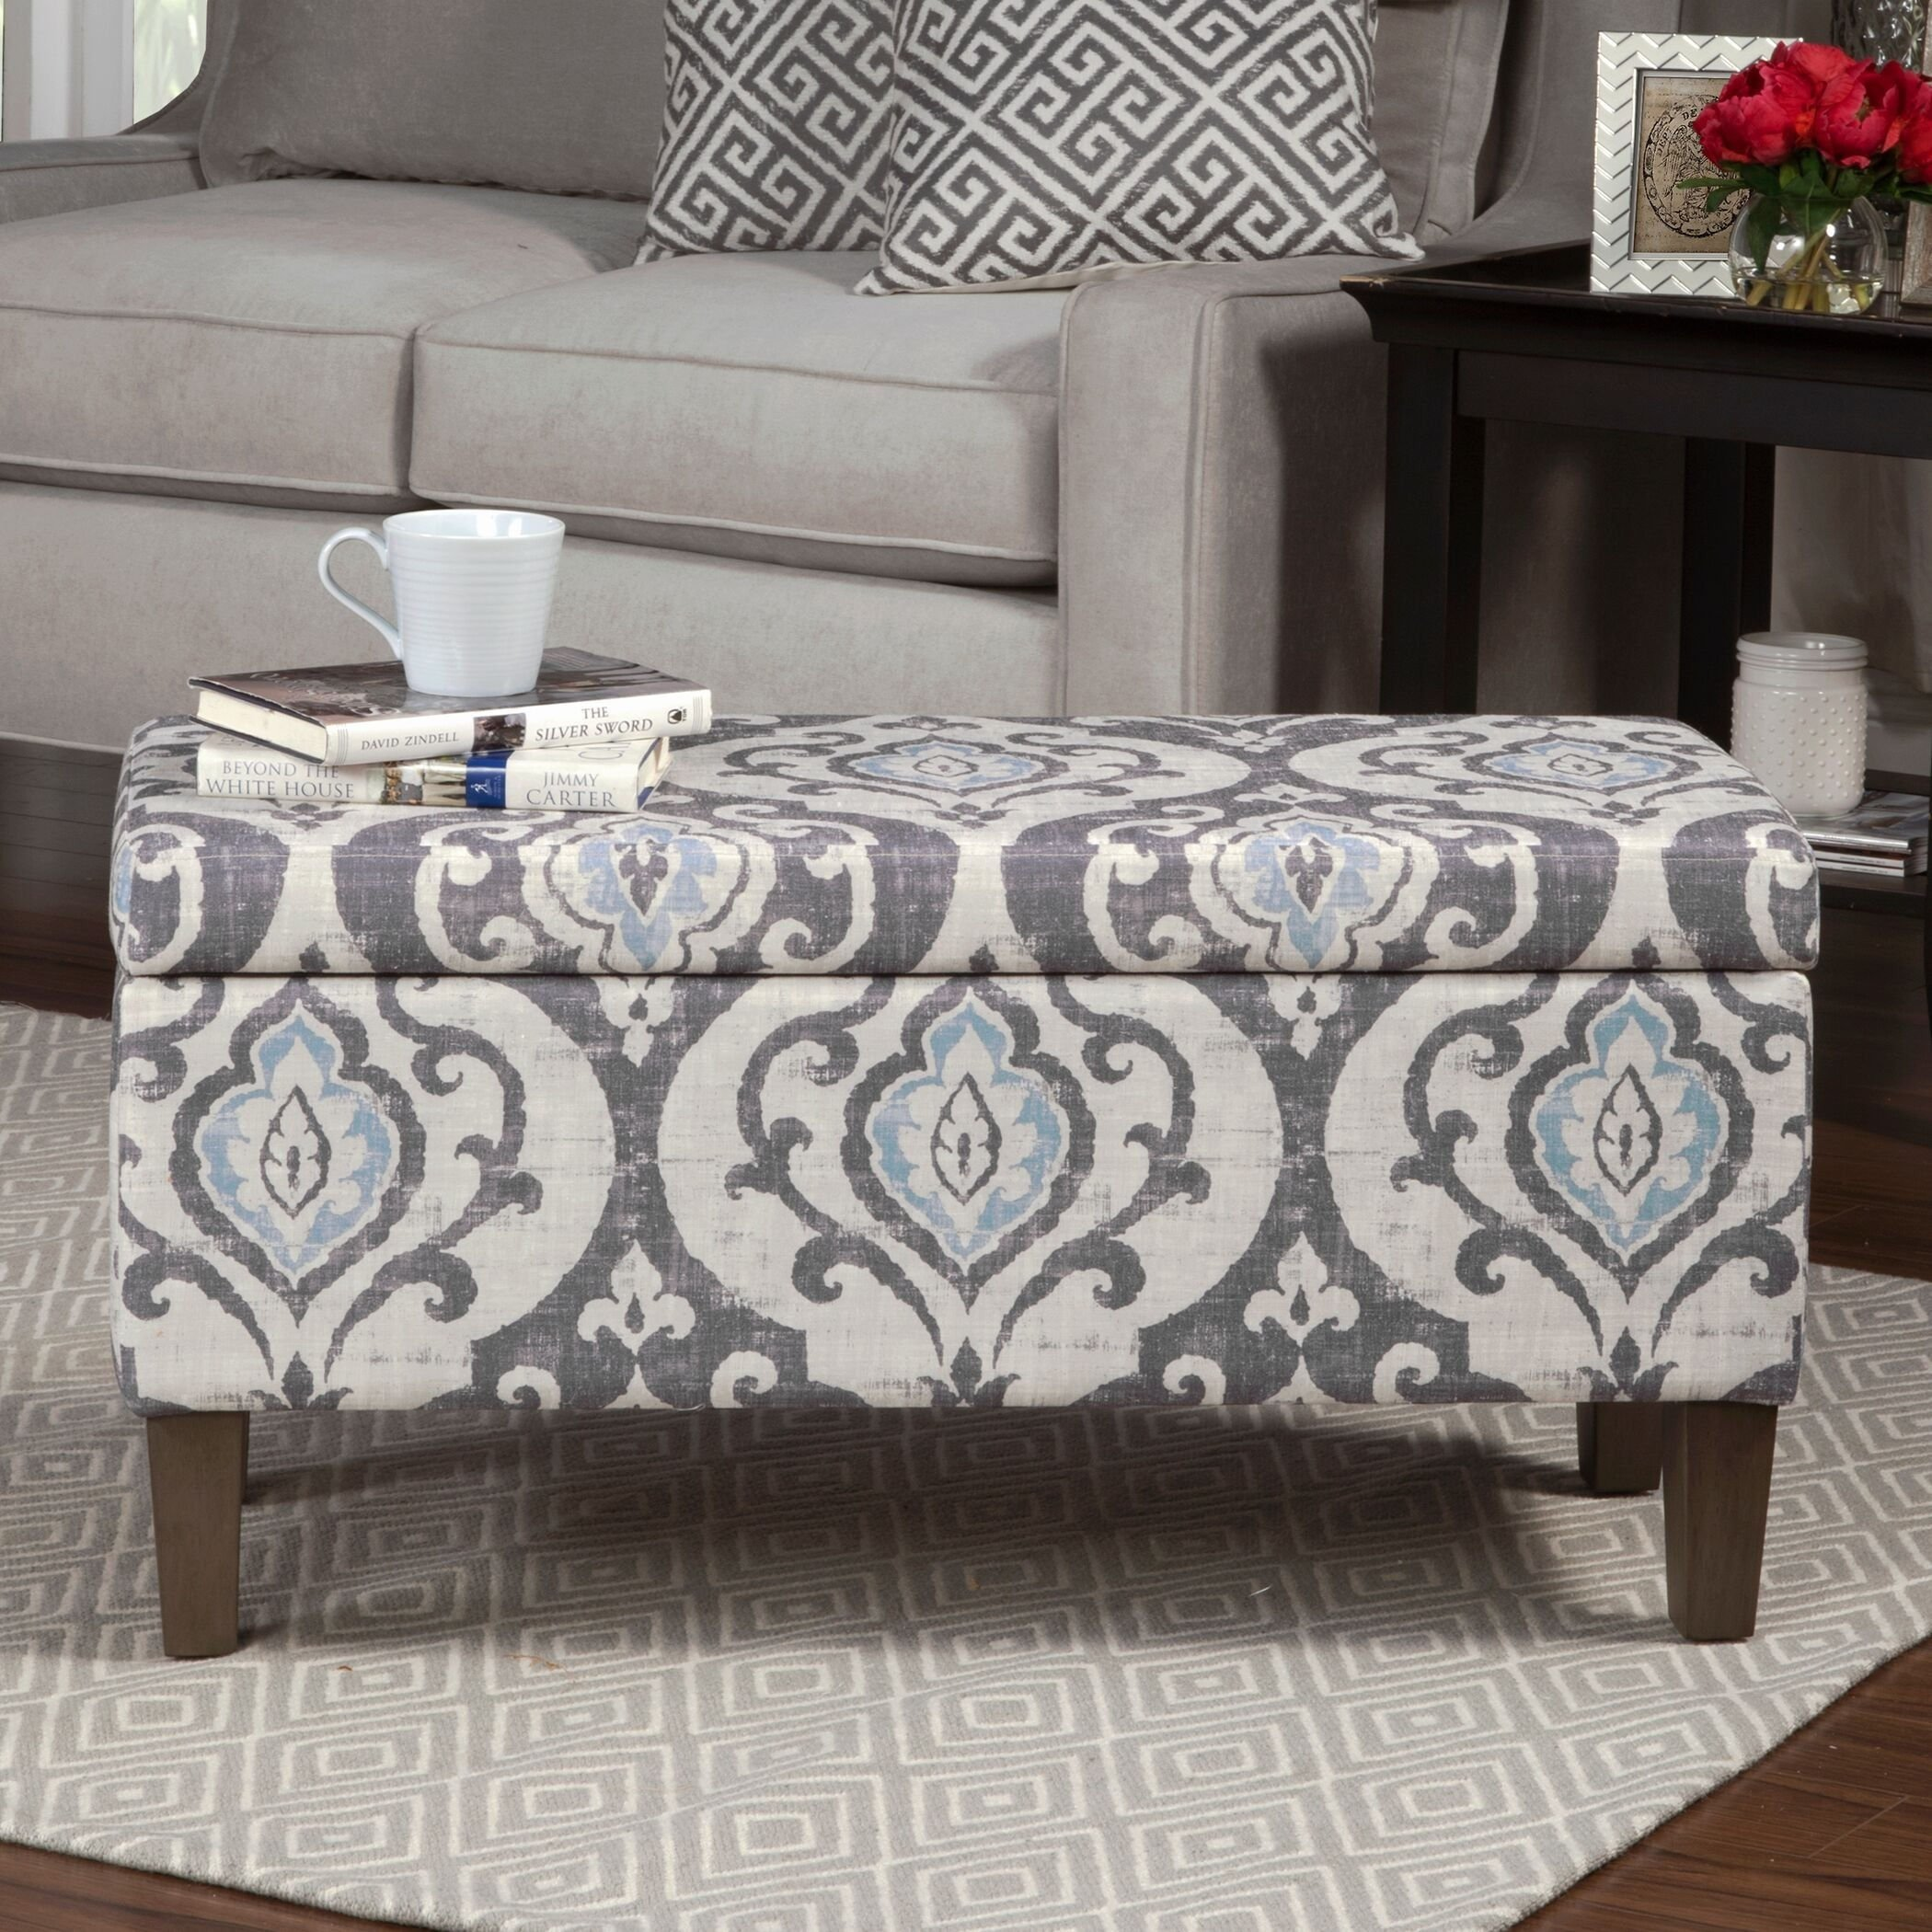 Modern Style Blue Slate Large Accent Round Shaped Vintage Storage Ottoman Bench | Wooden Legs, Gray Floral Design | Foam Seat, Living Room Decor - Includes ModHaus Living Pen